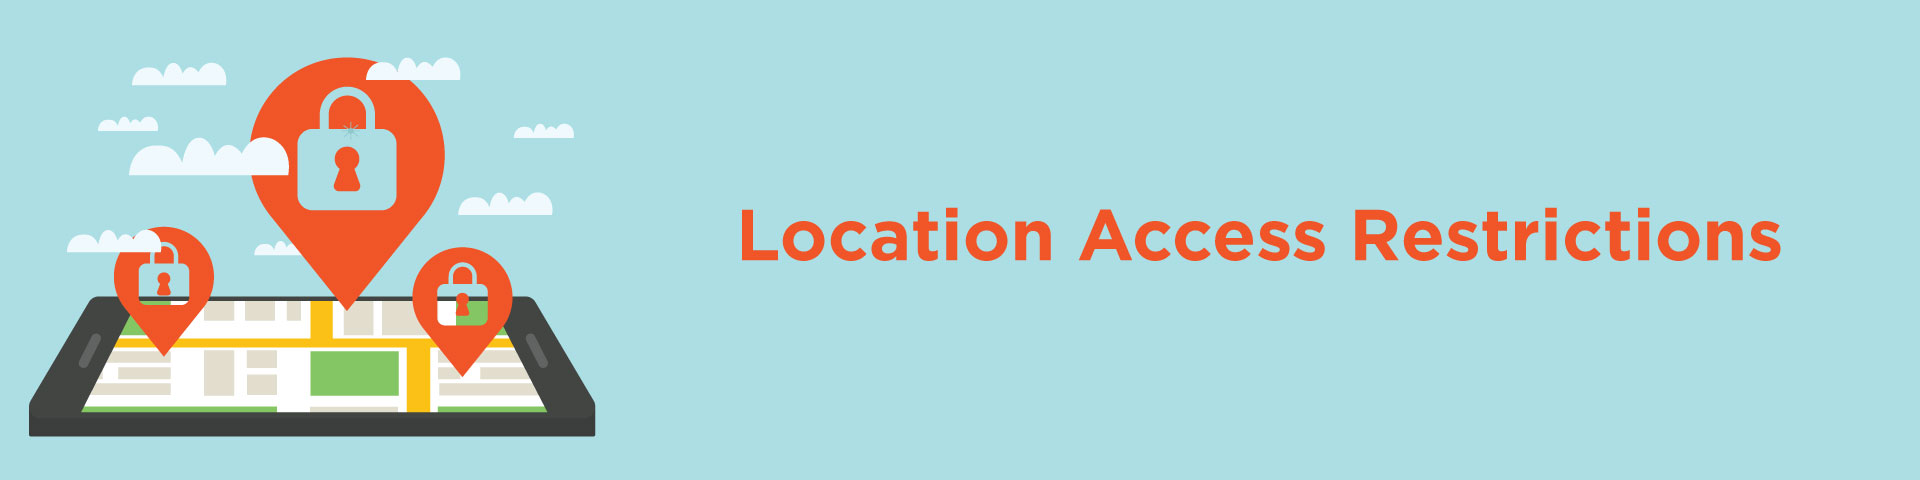 Location Access Restrictions